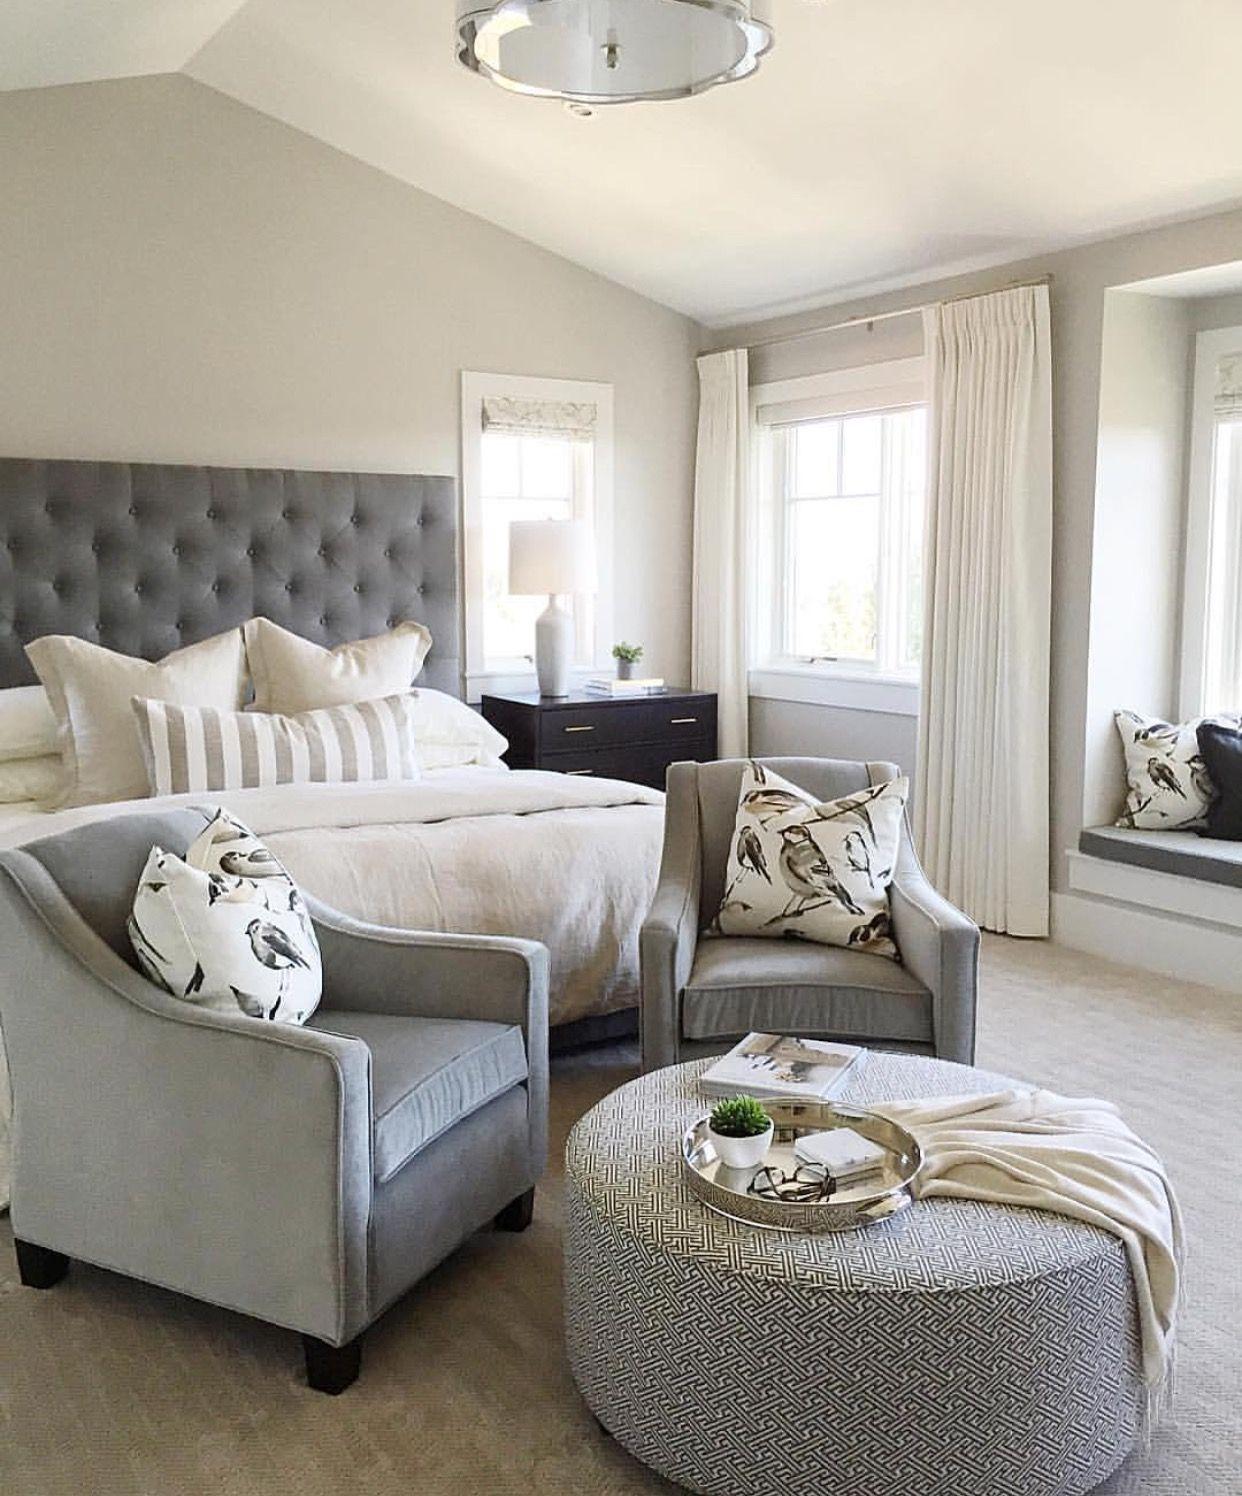 2 window bedroom ideas  pin by megan canfield on compound  pinterest  bedrooms master